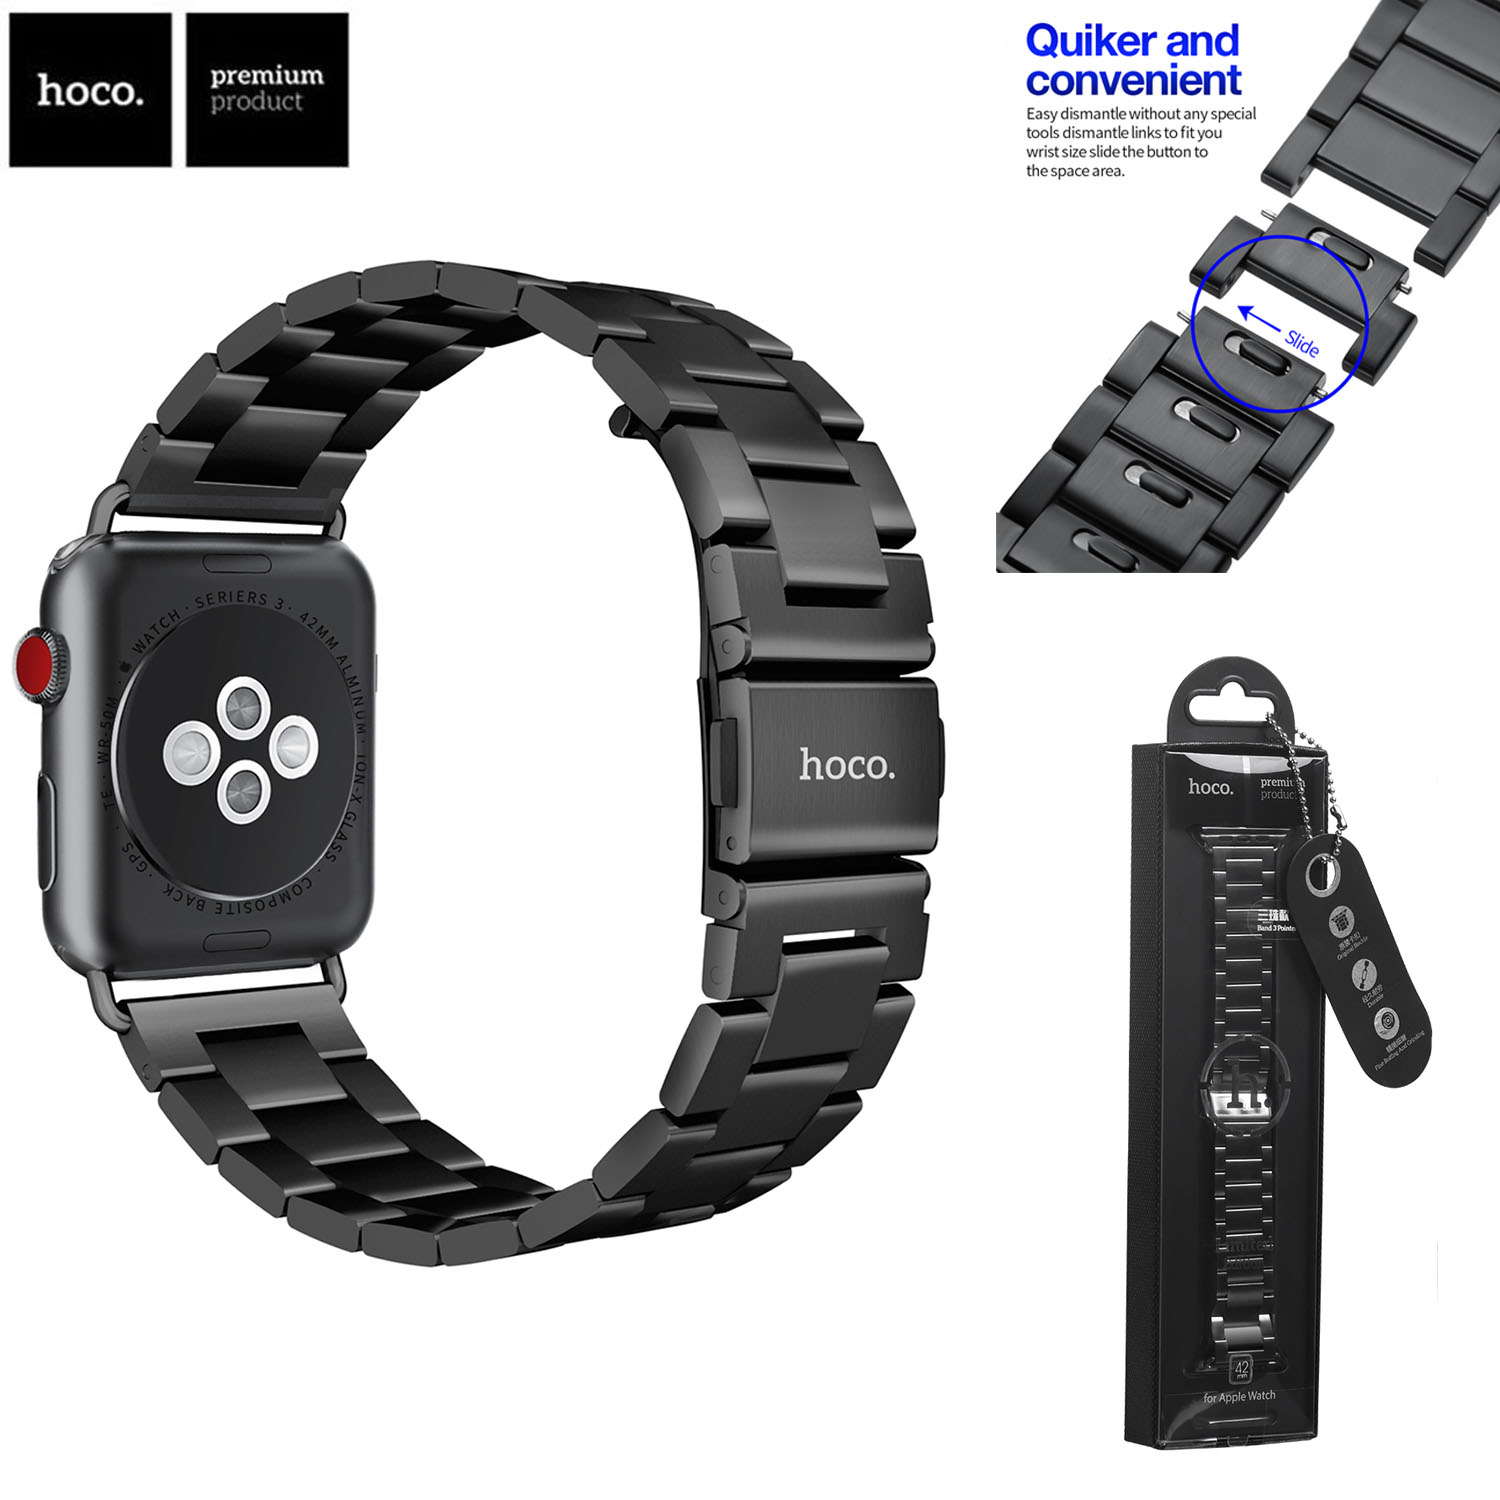 Original HOCO Watch Strap for Apple Watch Band Series 1 2 3 Stainless Steel Metal Watchbands for iWatch 38mm 42mm so buy for apple watch series 3 2 1 watchbands 38mm belt 42mm stainless steel bracelet milanese loop strap for iwatch metal band